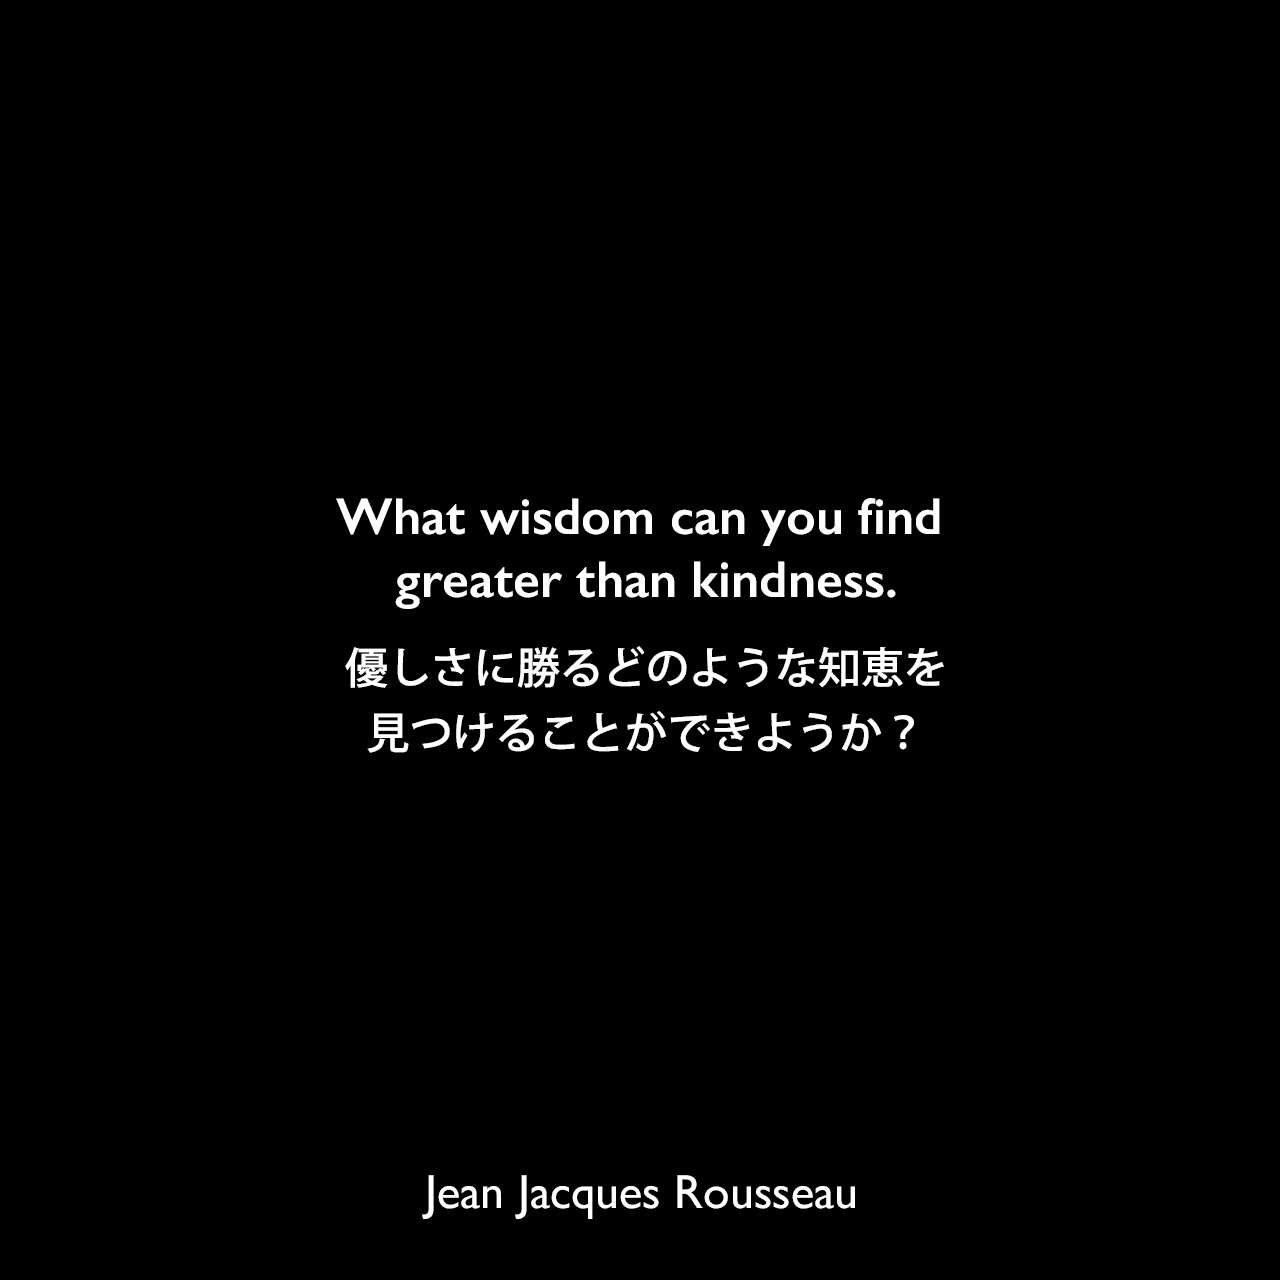 What wisdom can you find greater than kindness.優しさに勝るどのような知恵を見つけることができようか?Jean Jacques Rousseau